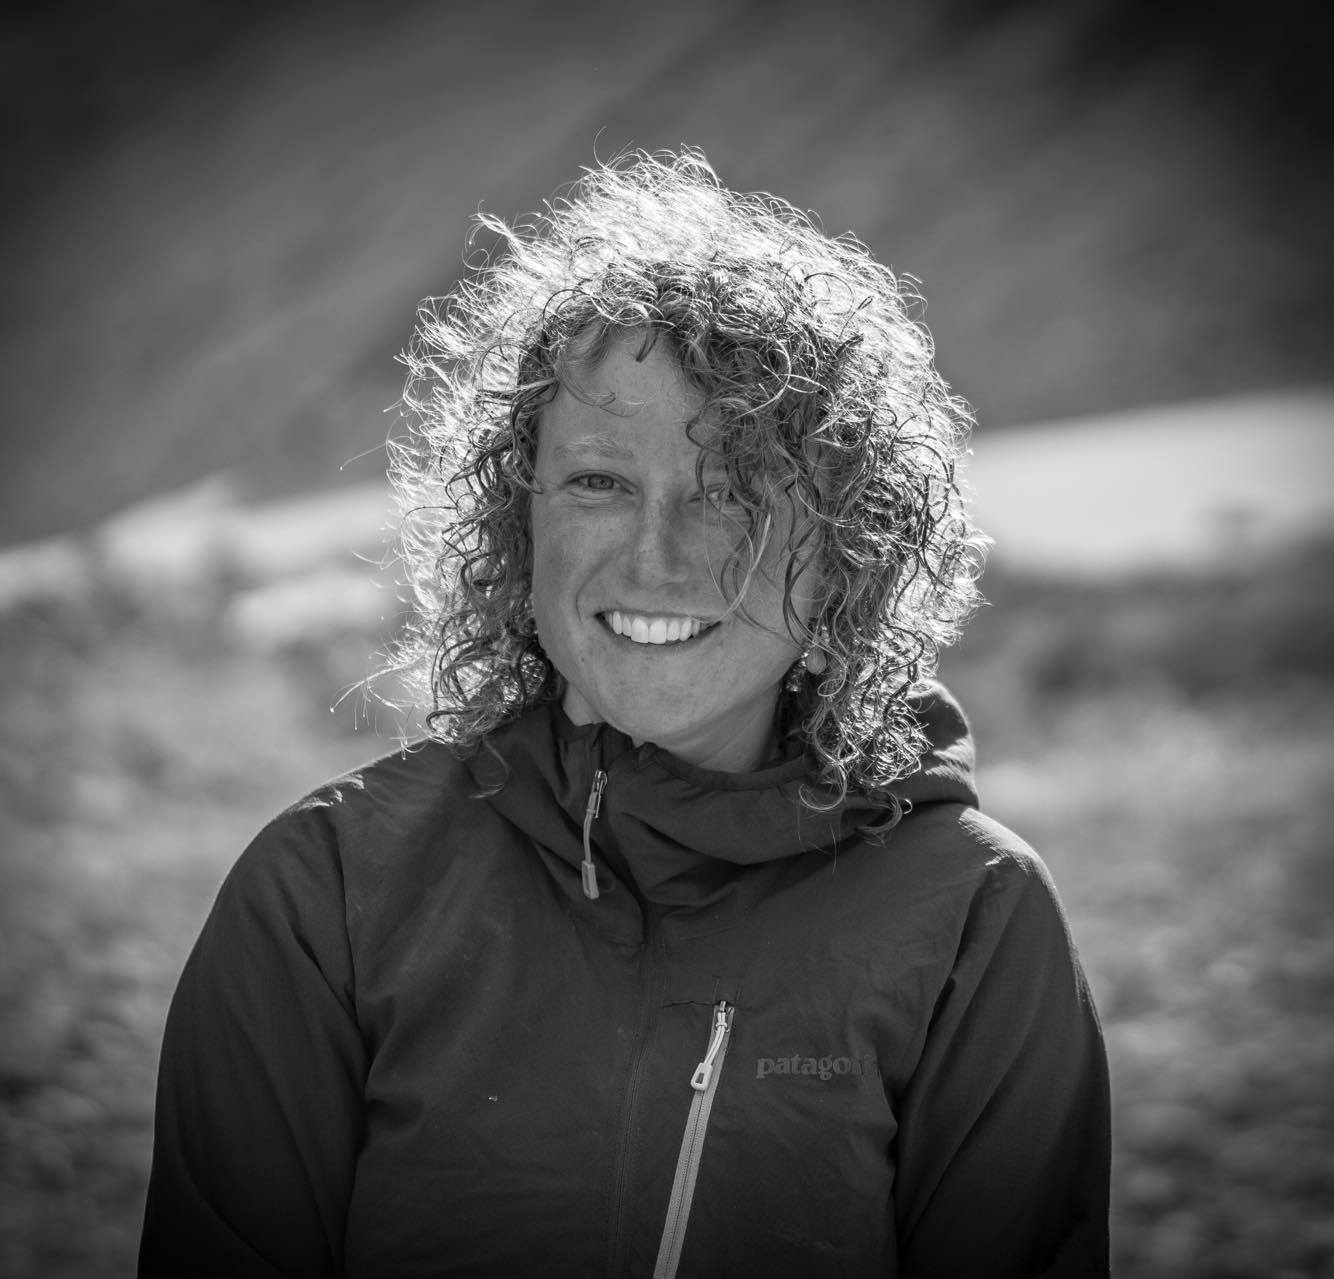 Madeleine Martin-Preney  Madeleine strives to continuously pursue an outgoing lifestyle through mountaineering, guiding and adventuring in the backcountry. Madeleine is an ACMG ski and hiking guide and is committed to exploration and adventure, personal growth and positive connections with people and the natural landscape. We are so excited to have Girls Do Ski included as part of Madeleine's outdoor life.